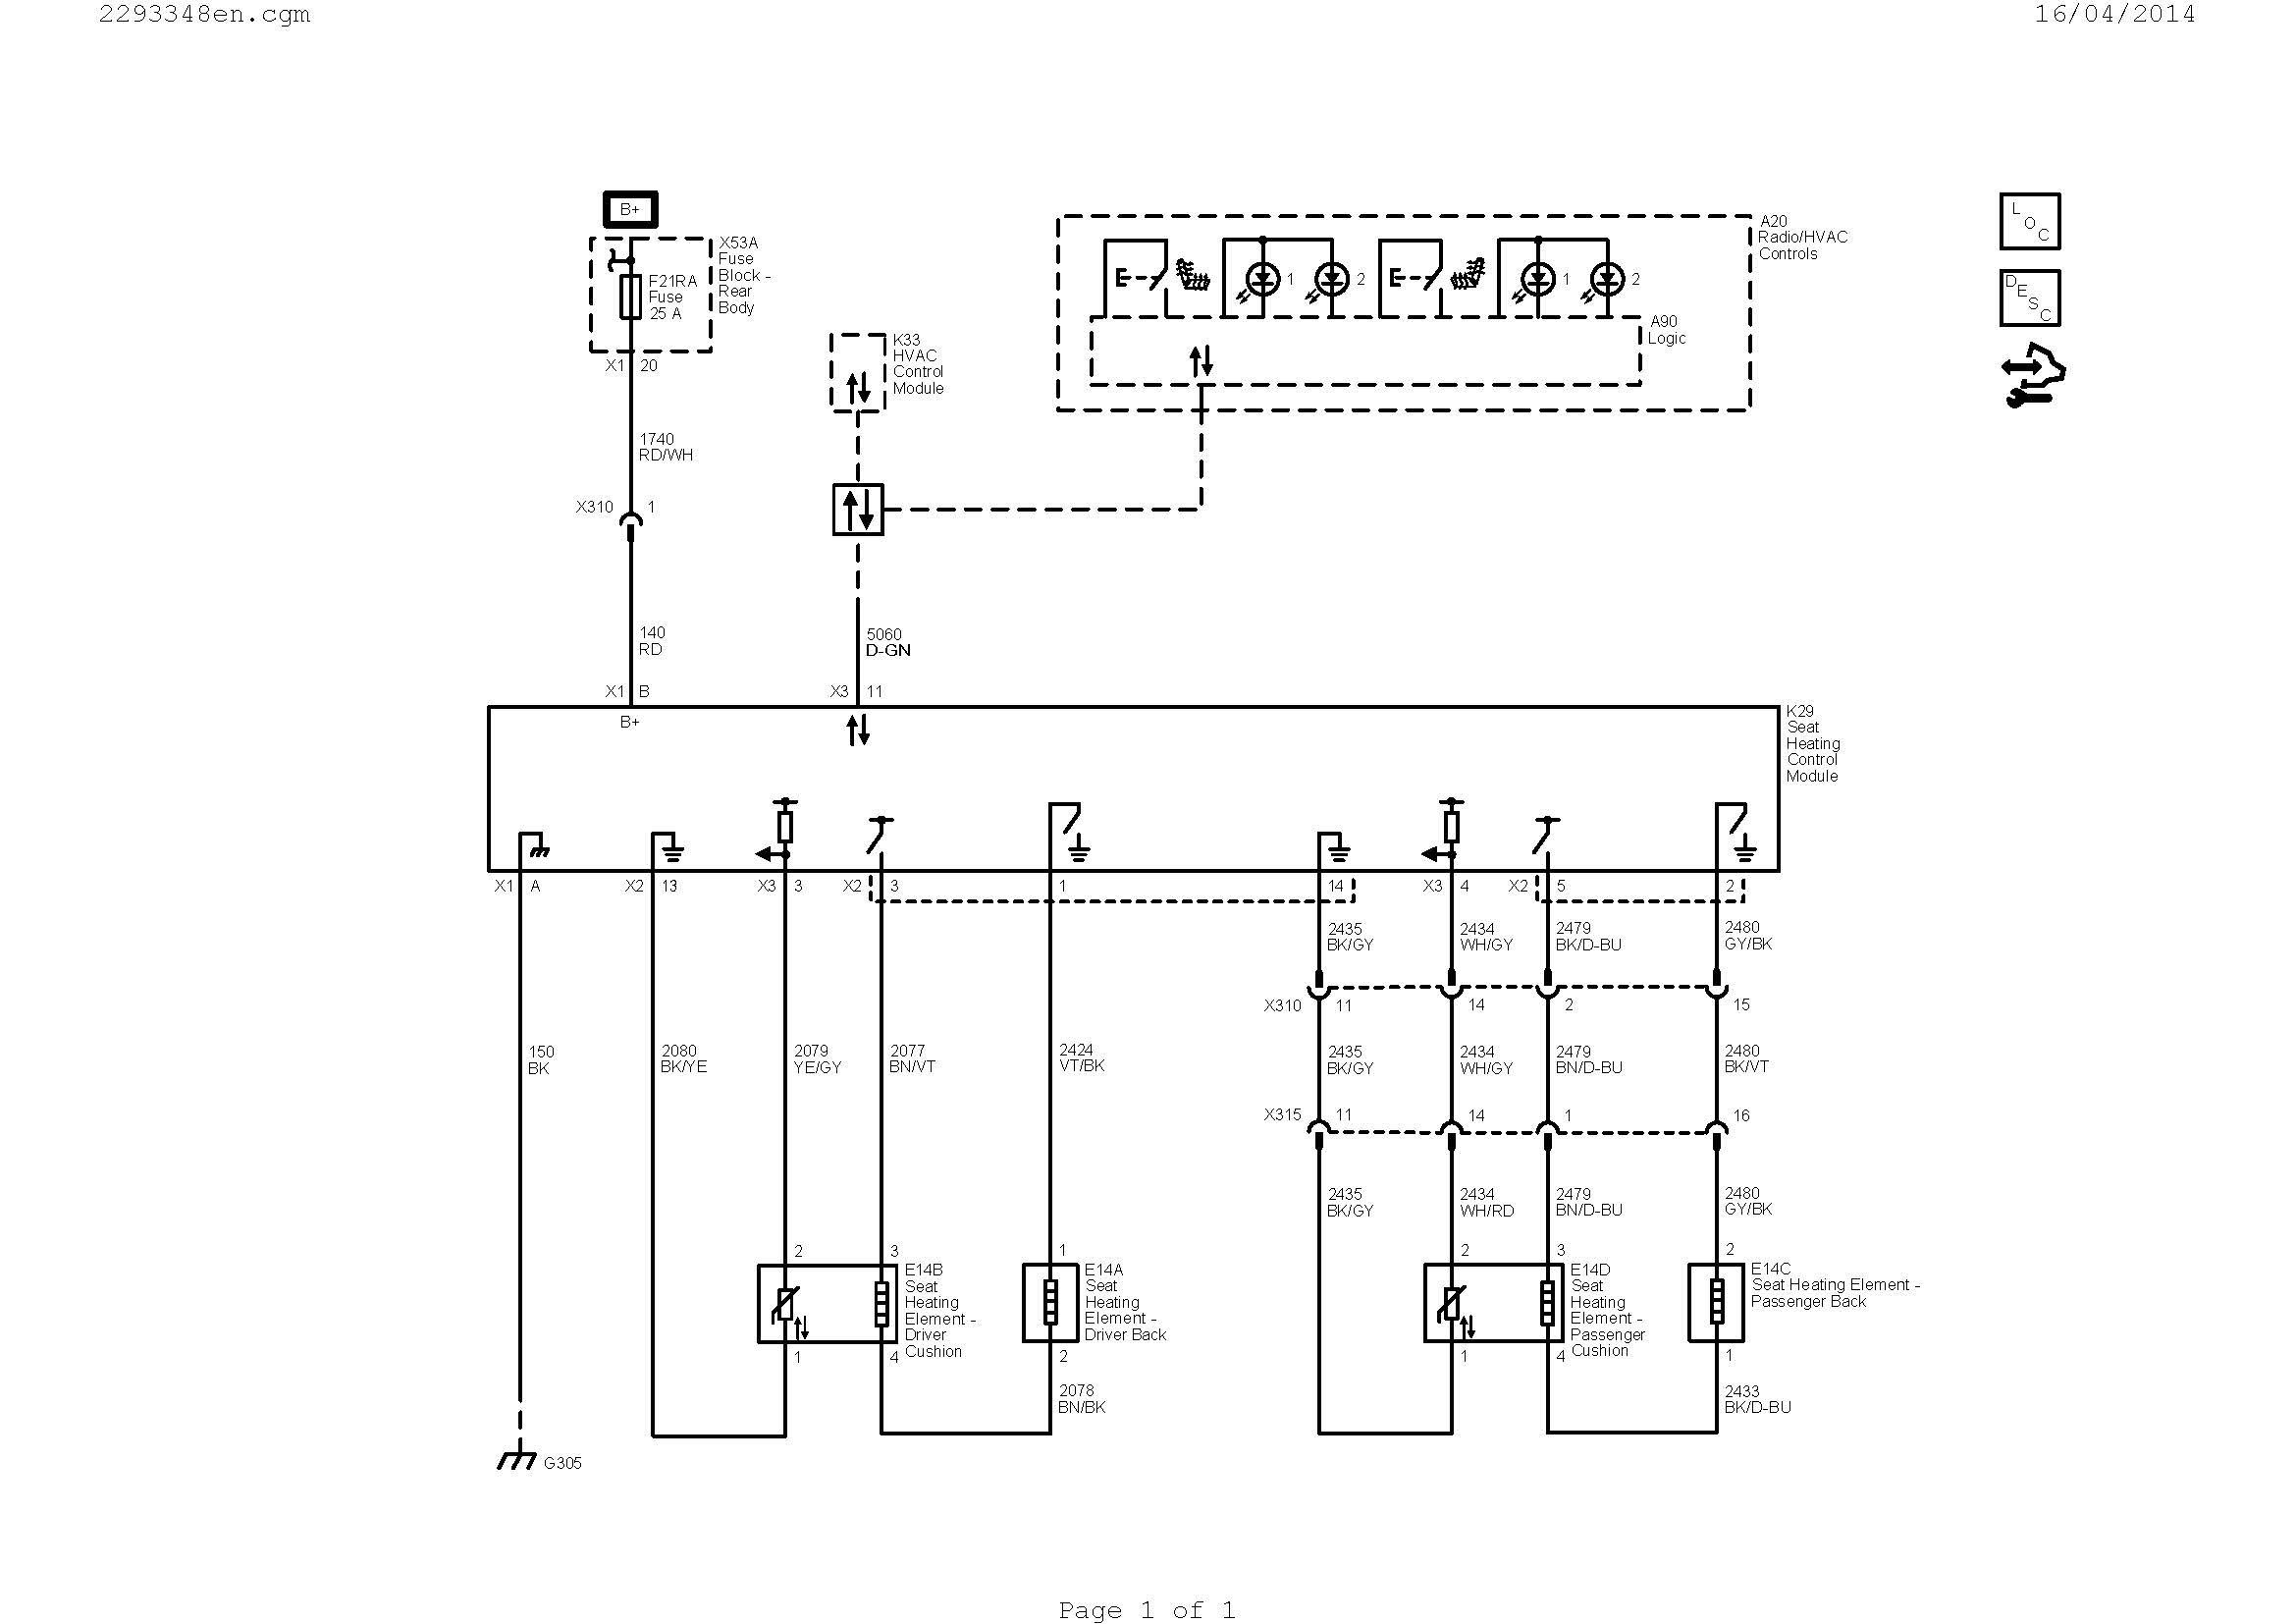 Parts Of A Trailer Hitch Diagram Wiring Diagram for Semi Trailer Plug & Trailer Wiring Diagram 4 Wire Of Parts Of A Trailer Hitch Diagram